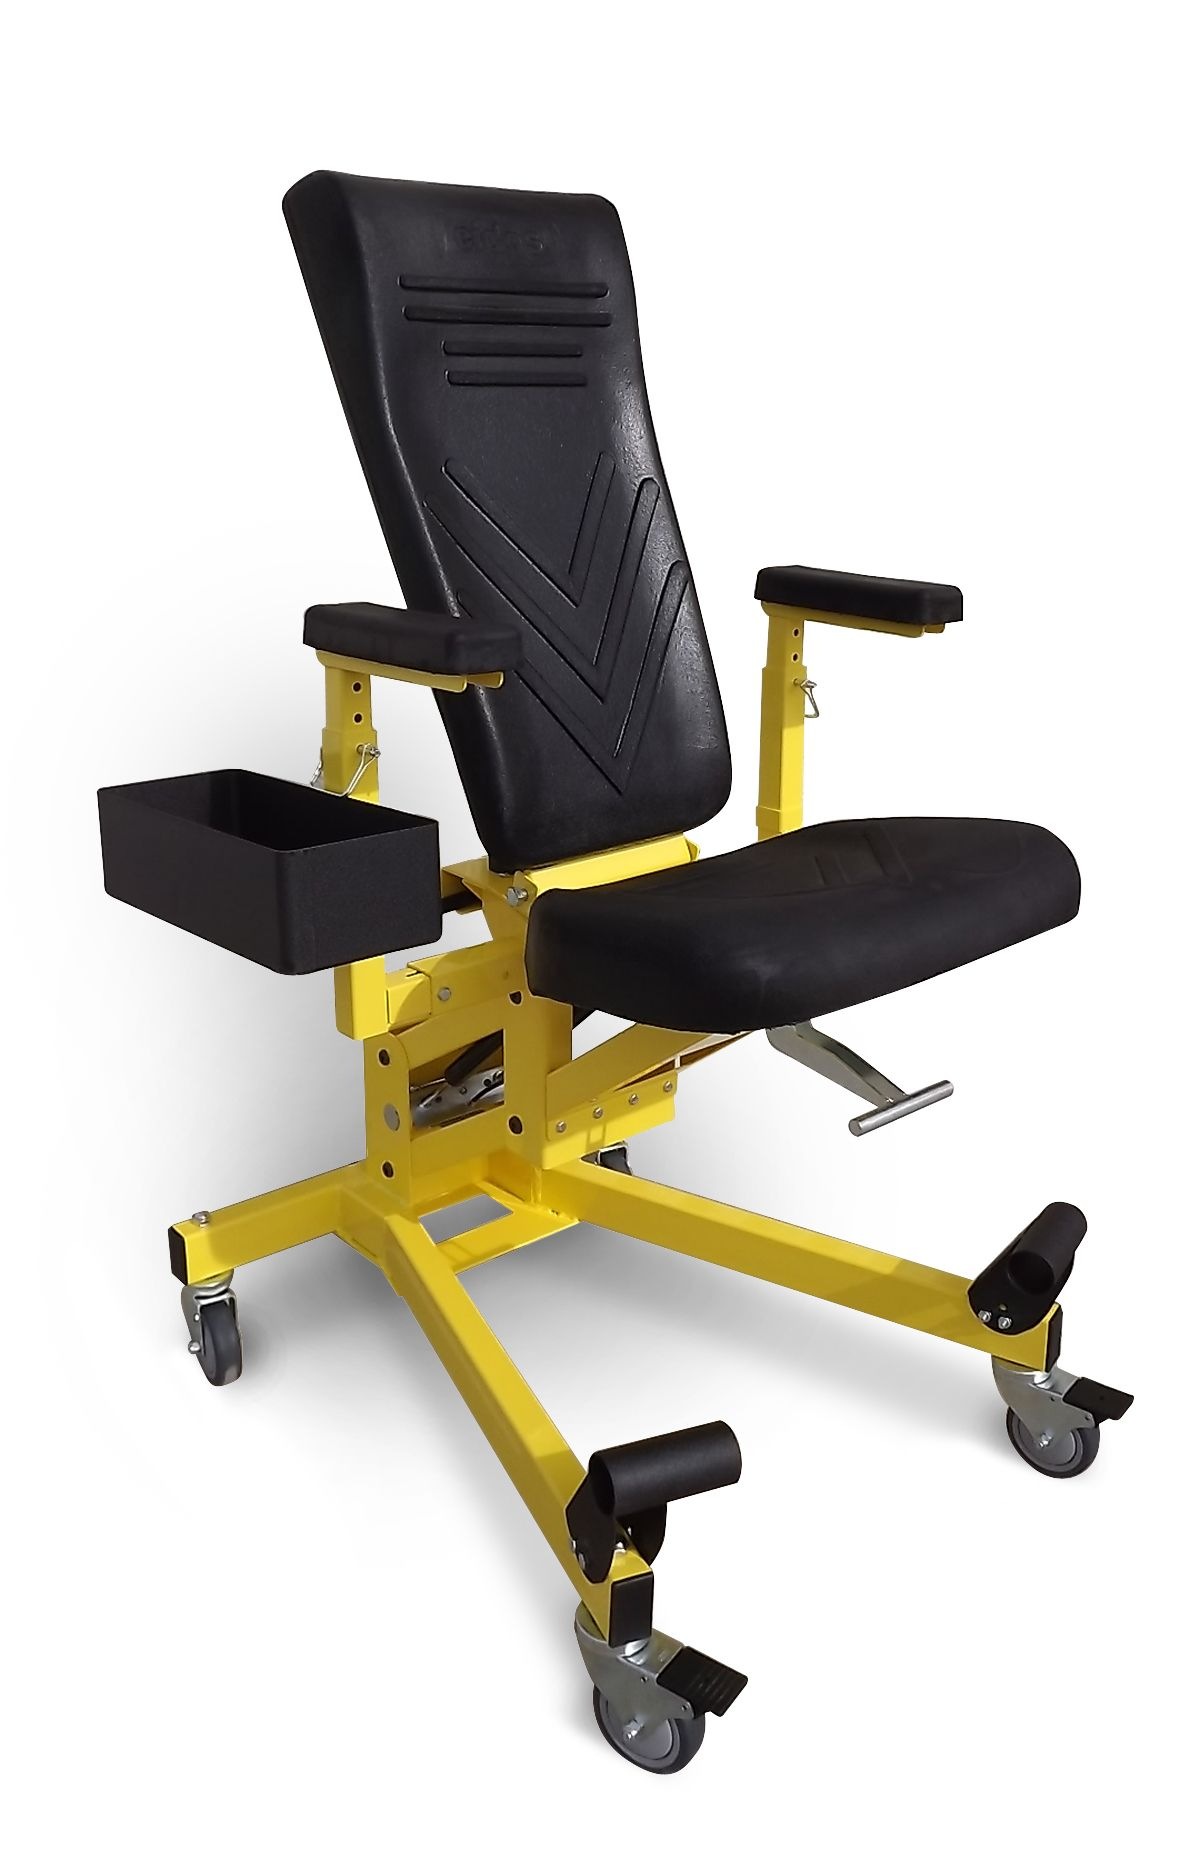 Eidos model 117 gsw is an fully adjustable work positioner for Chair design ergonomics